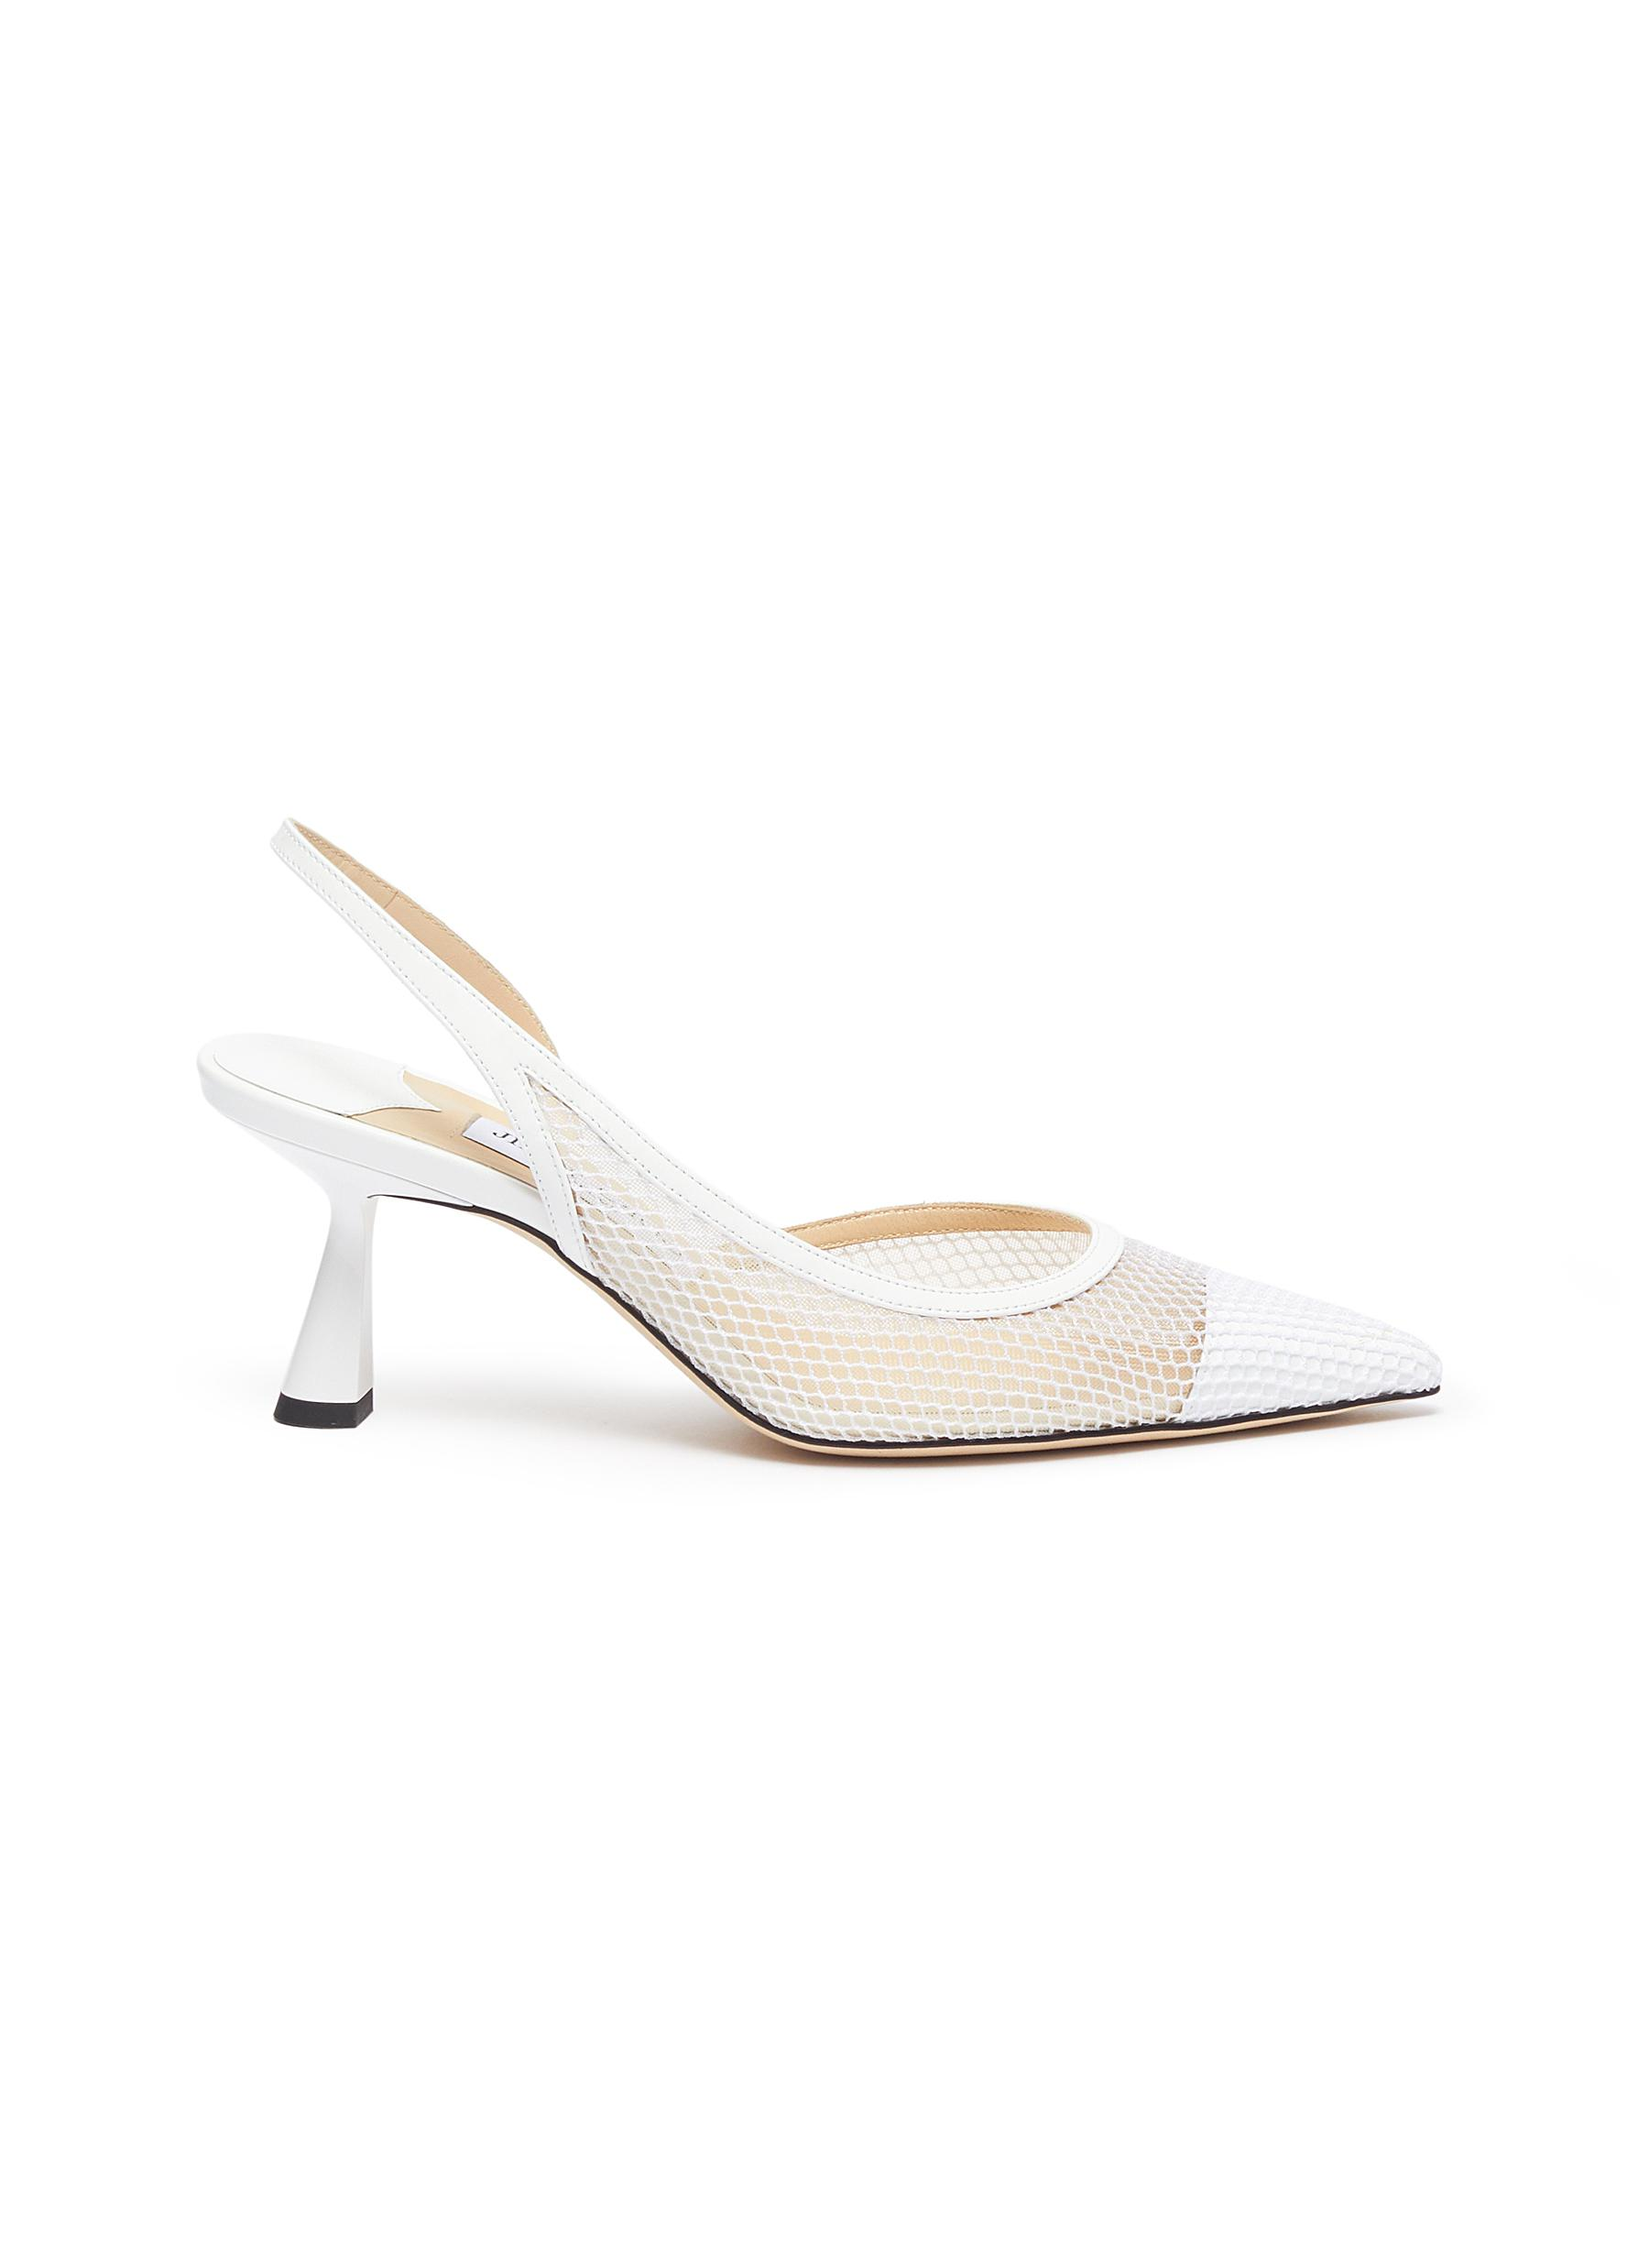 Fetto 65 mesh slingback pumps by Jimmy Choo